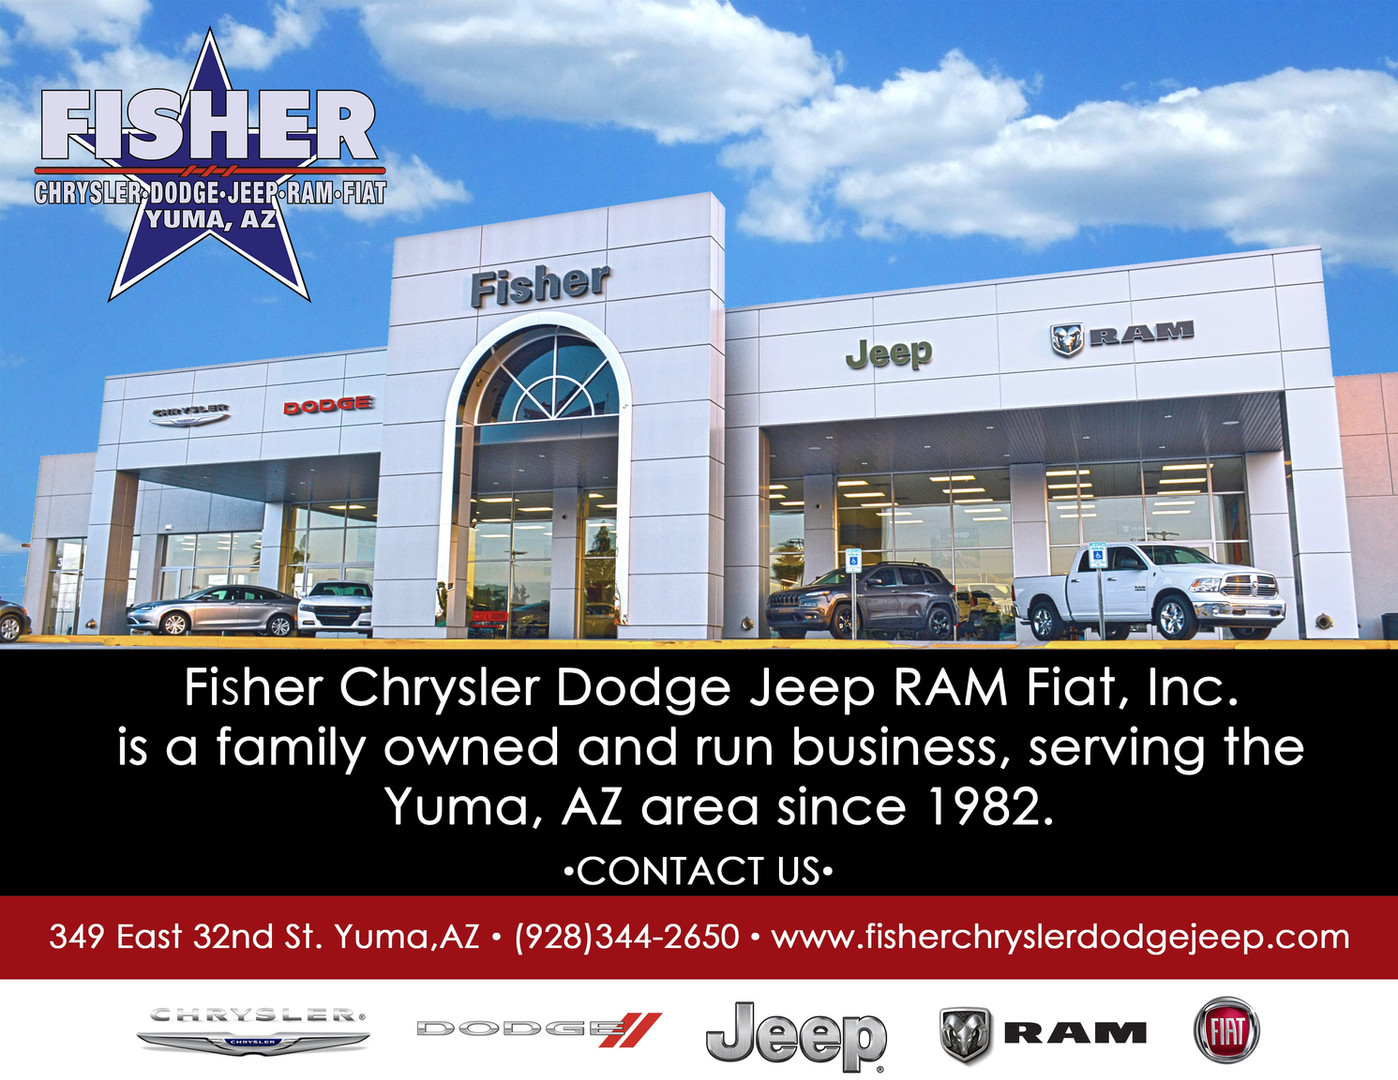 Fisher Chrysler Dodge Jeep Ram Fiat